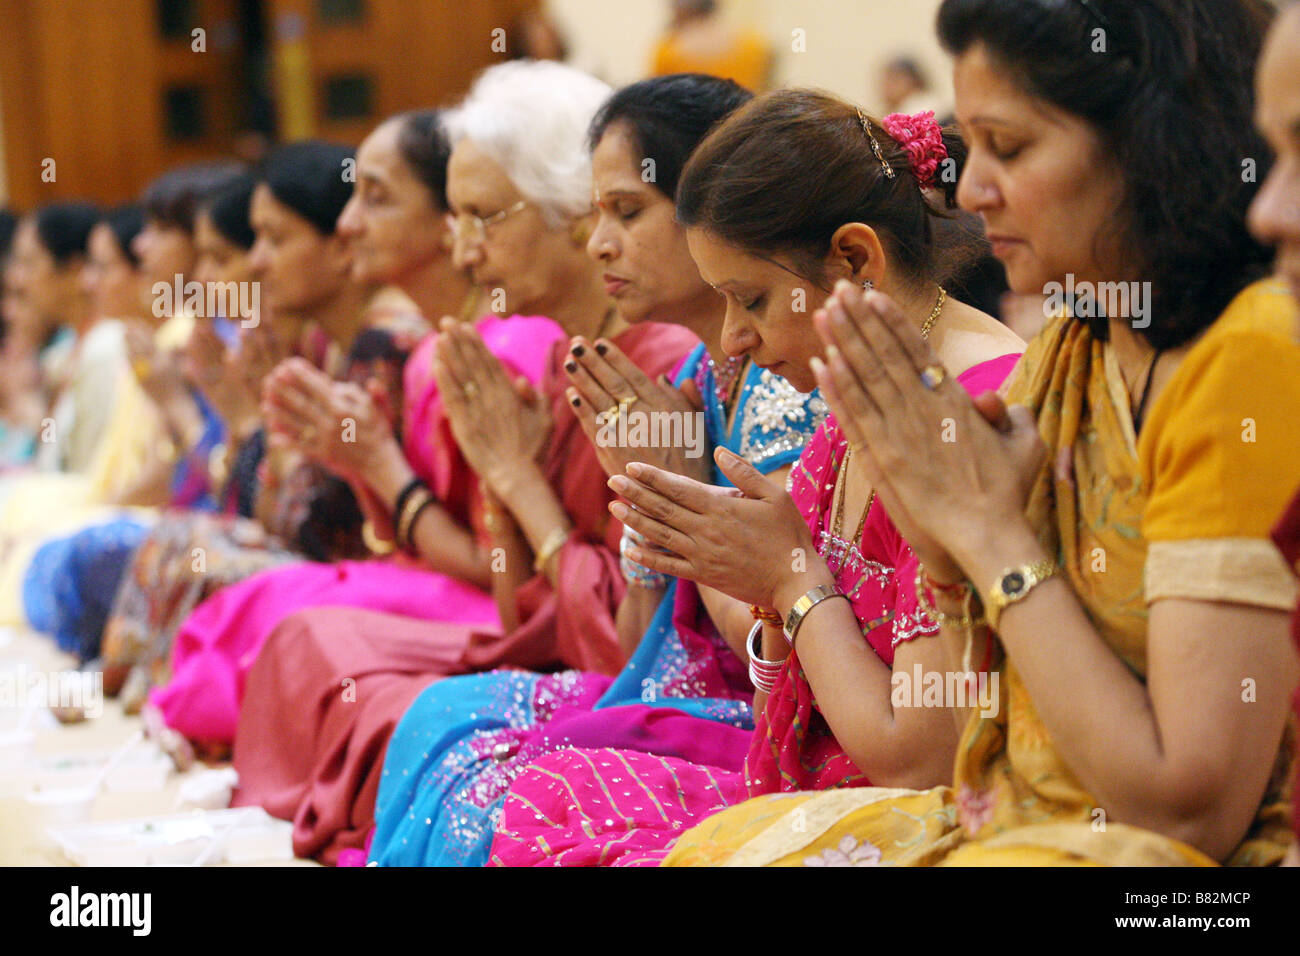 Women celebrating Diwali at Shri Swaminarayan Mandir Temple in Neasden, North west London - Stock Image